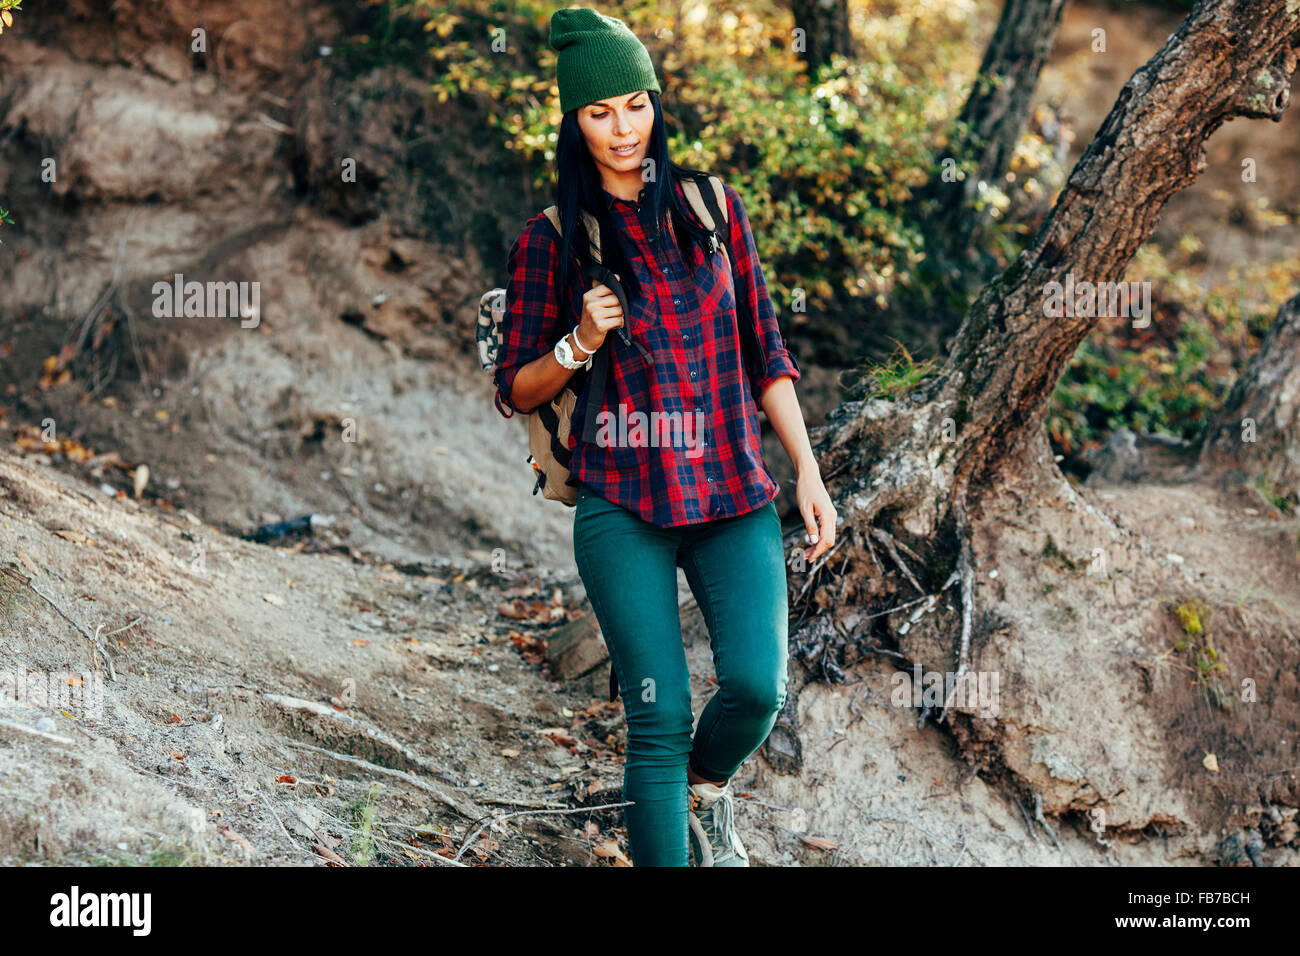 Woman in casuals hiking in forest - Stock Image